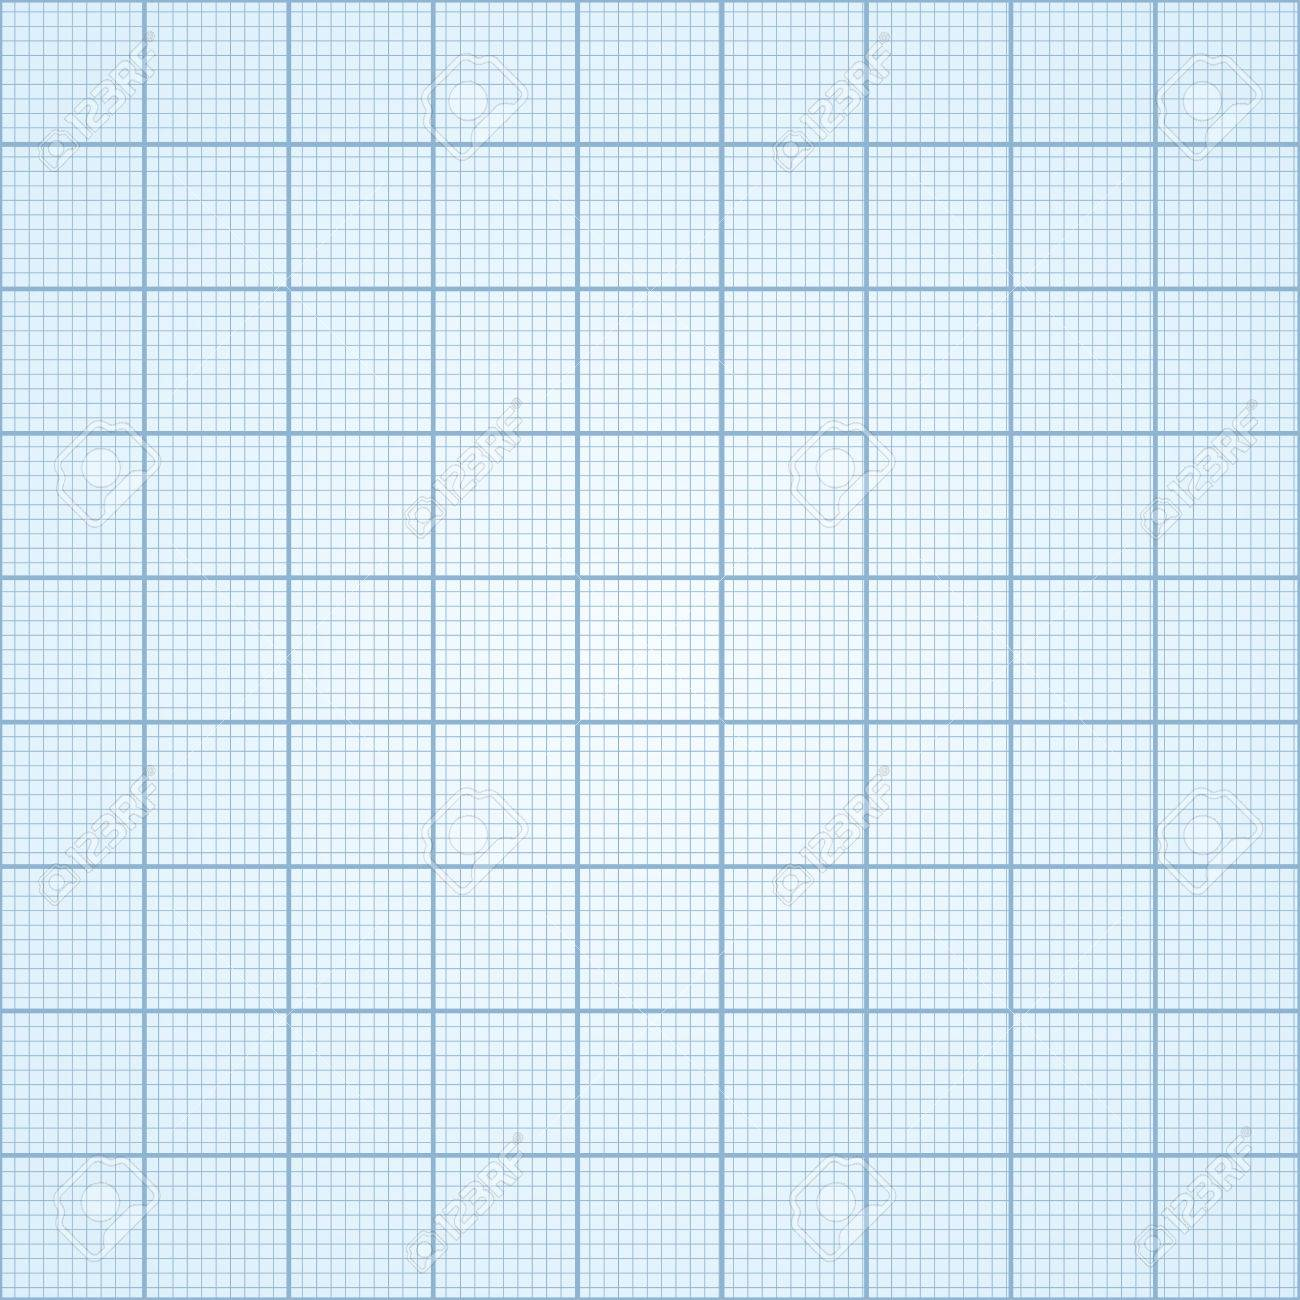 graph paper word document